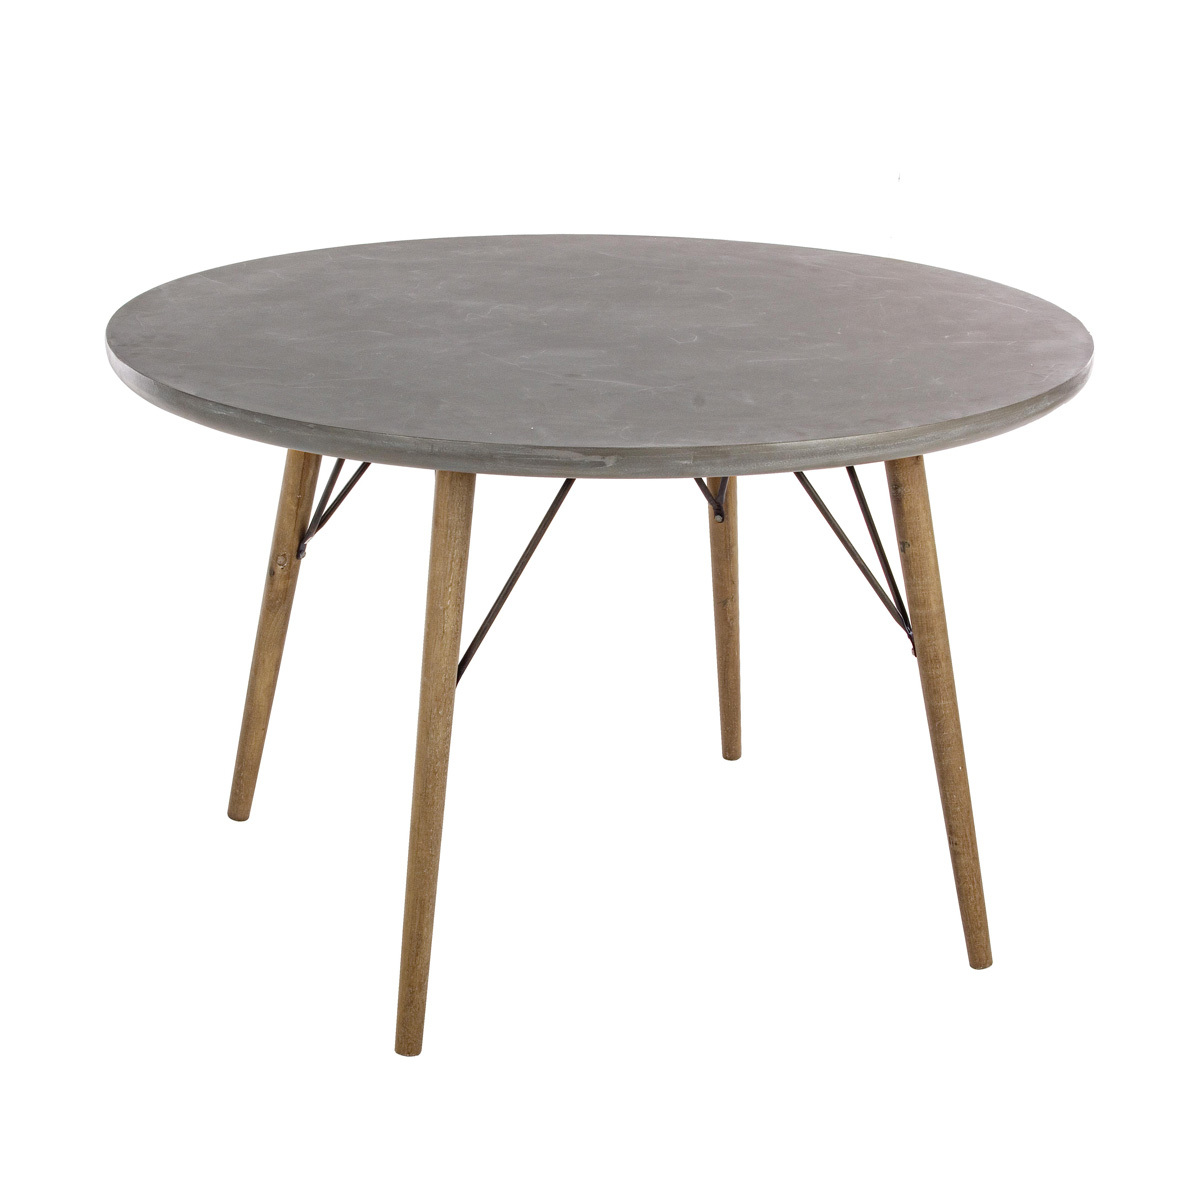 Photos 1: Bizzotto Round wood table d.120 0740247